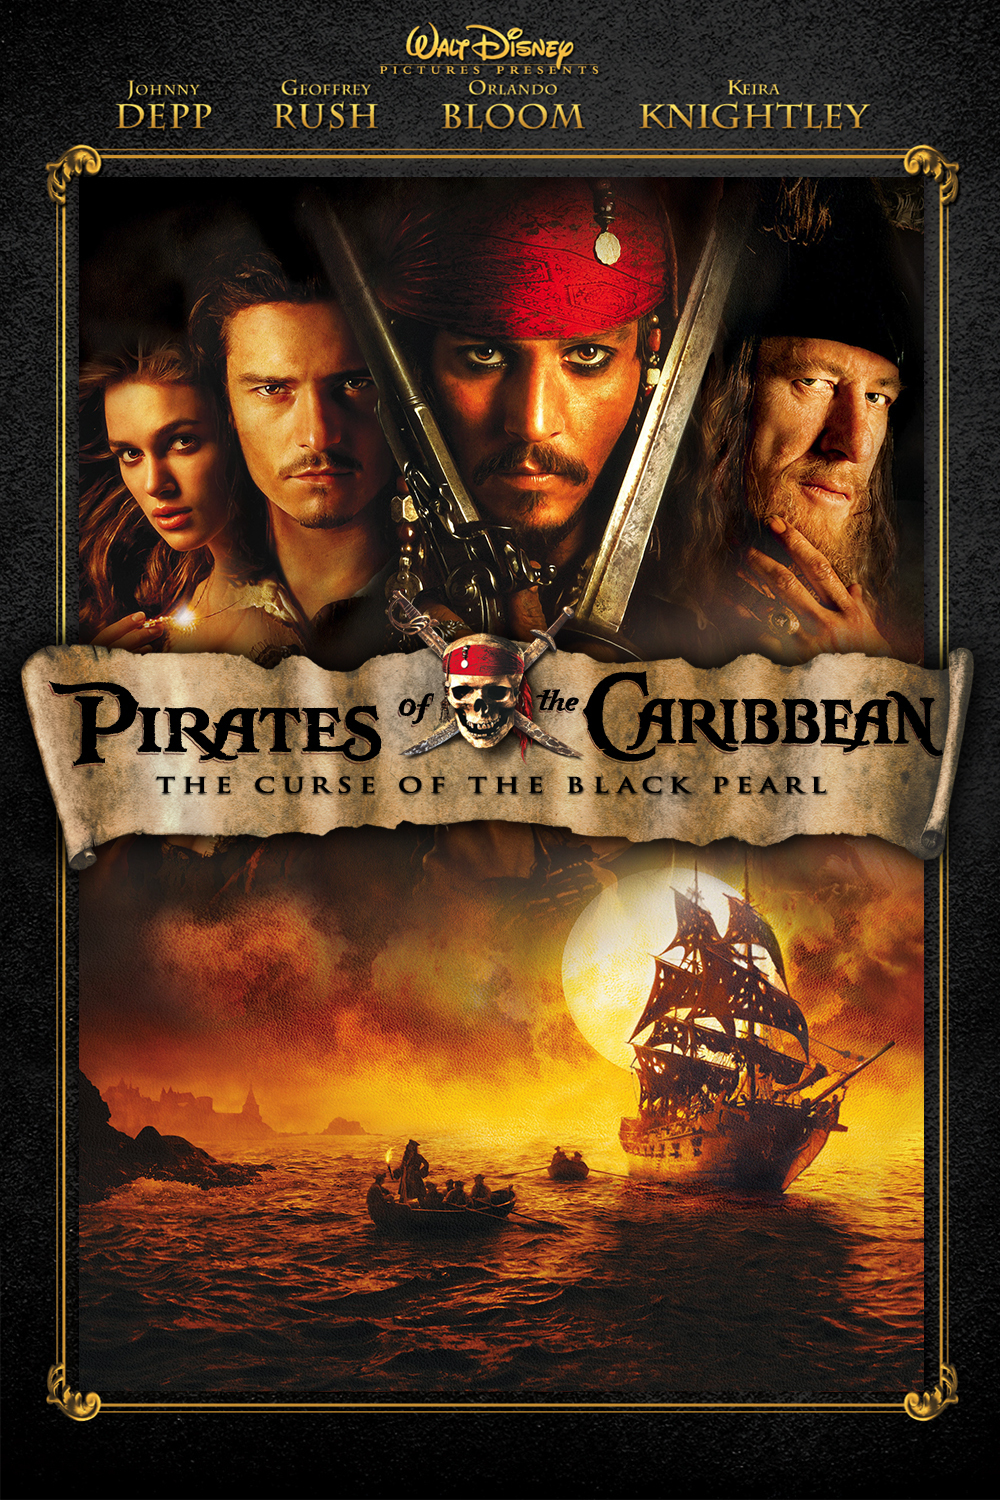 pirates-of-the-caribbean-curse-of-the-black-pearl.jpg